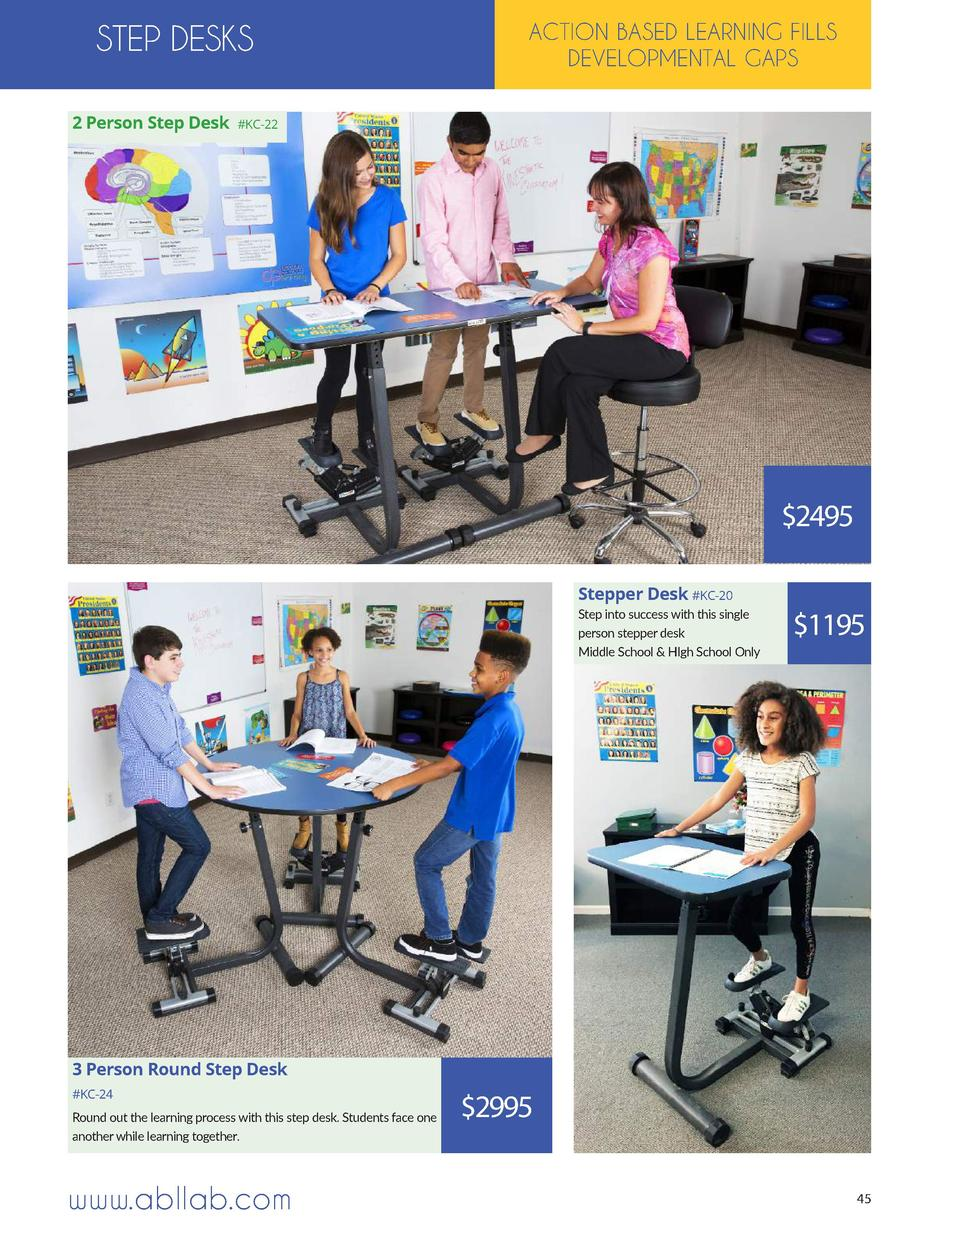 STEP DESKS 2 Person Step Desk  ACTION BASED LEARNING FILLS DEVELOPMENTAL GAPS   KC-22   2495 Stepper Desk  KC-20 Step into...